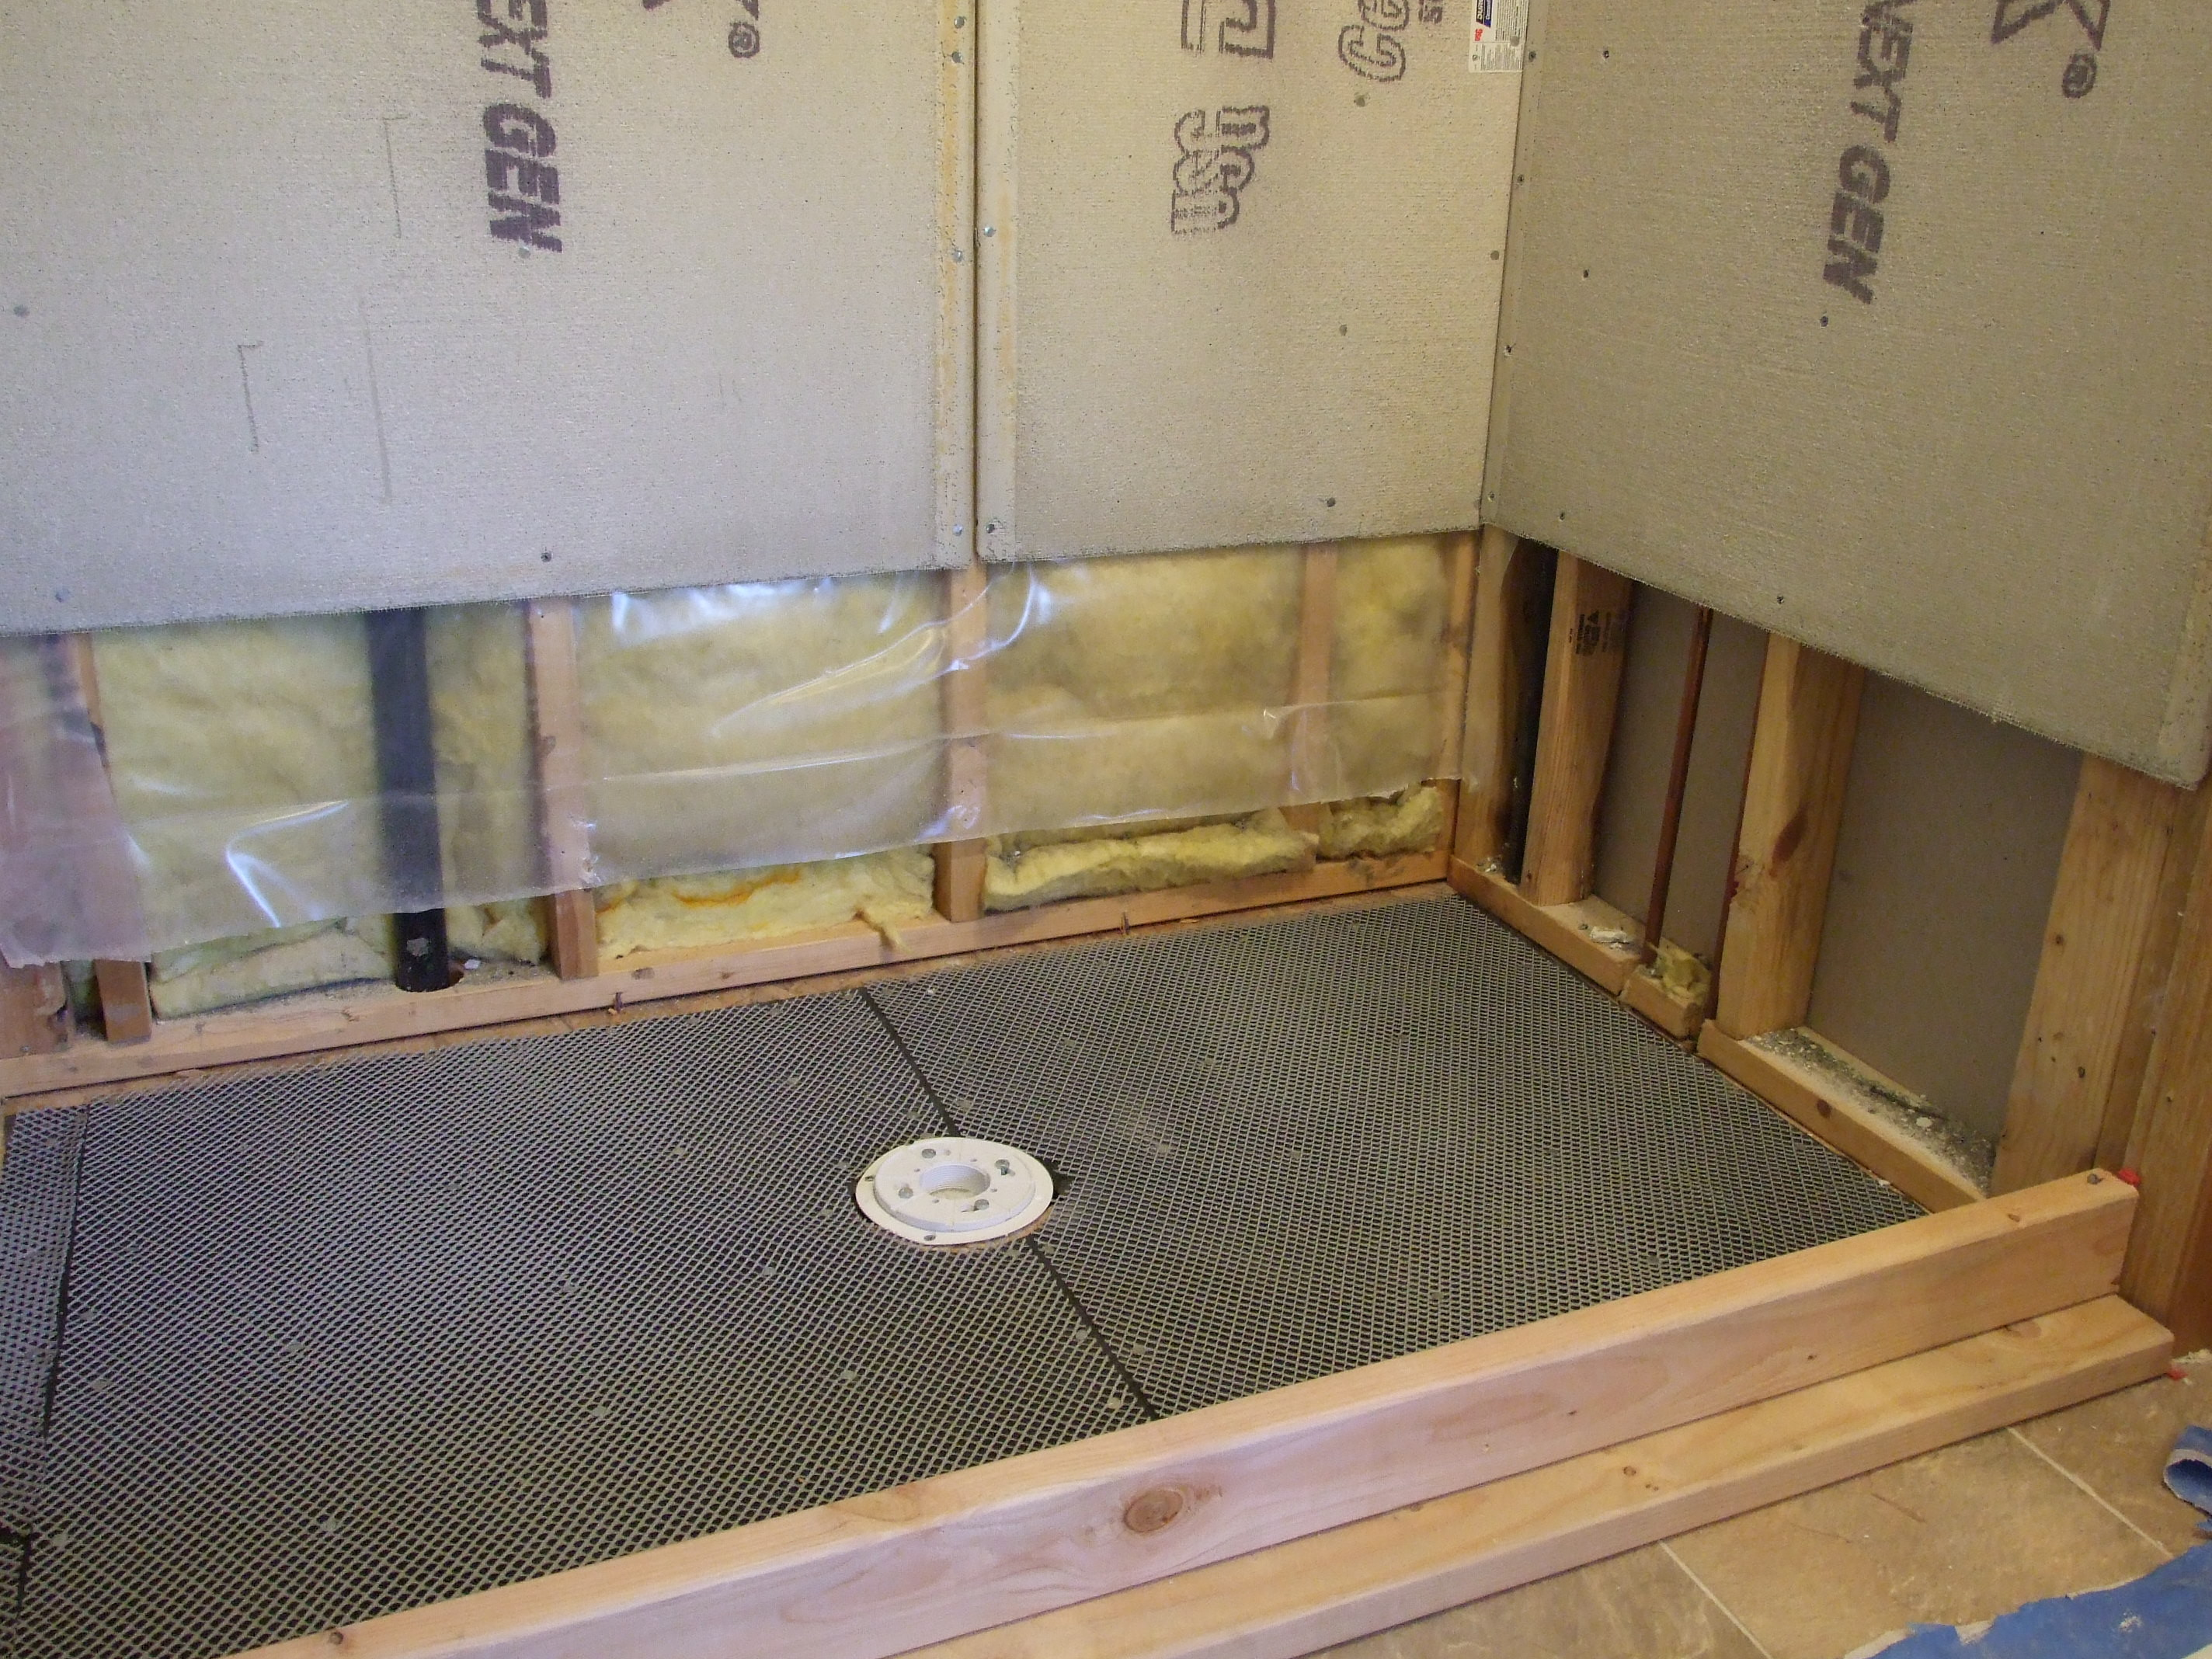 Tile shower pan installation step by step touchdown tile over plywood sub floorskip to step 4 if concrete sub floor install tar paper and plastic or metal lathe with 38 staples or galvanized roofing nails dailygadgetfo Choice Image